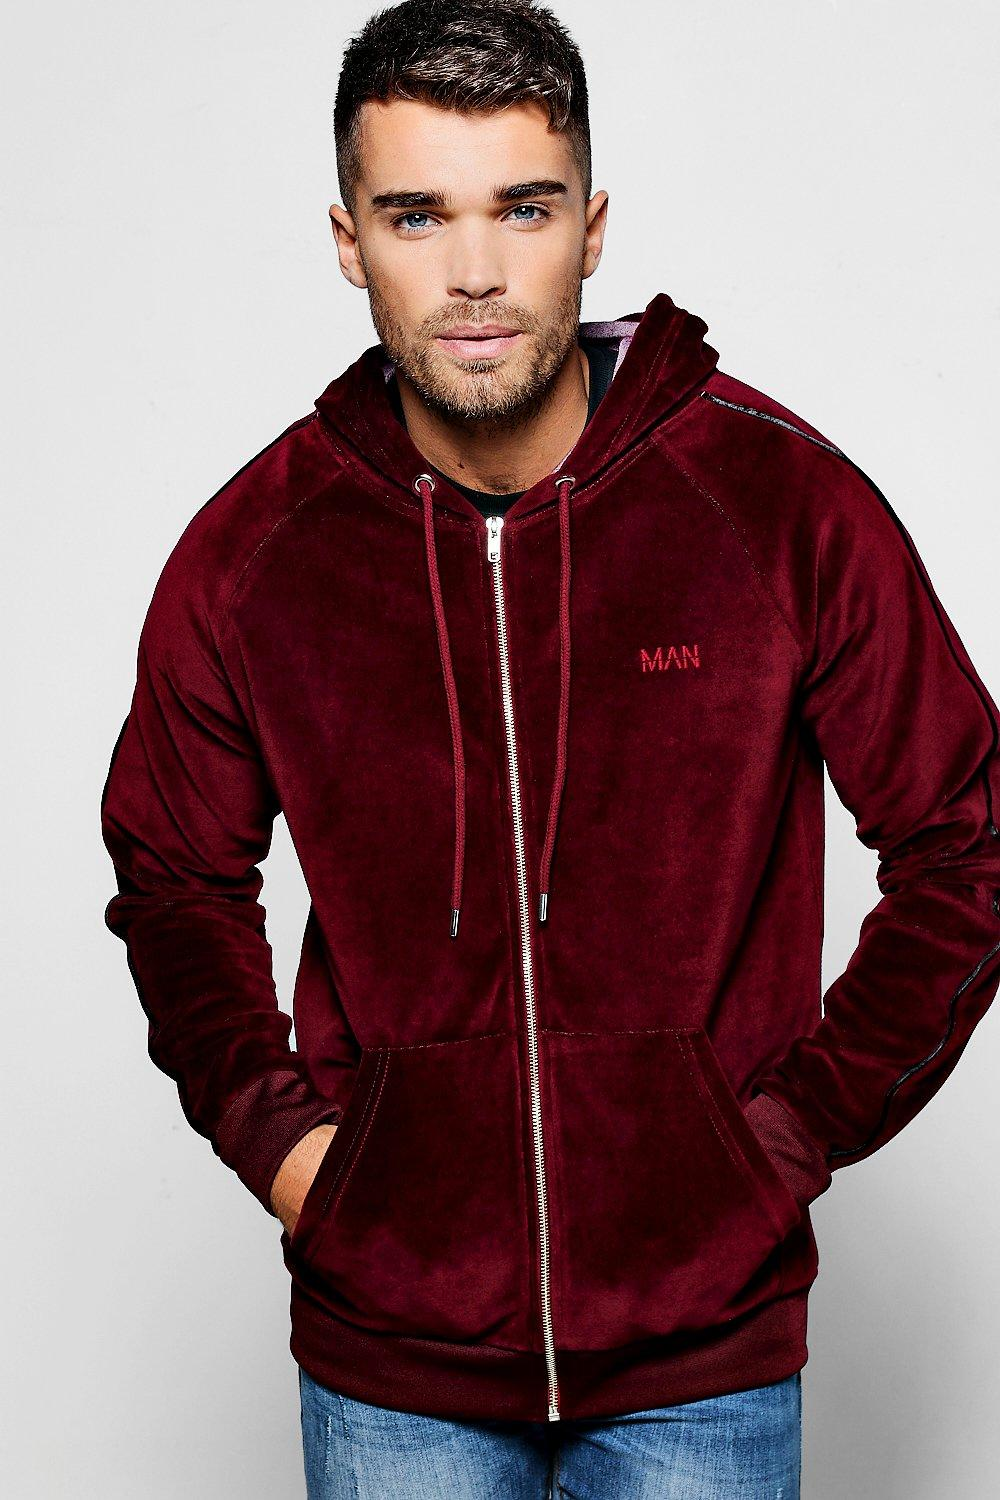 MAN Embroidered Velour Hoodie With Piping | boohooMAN UK